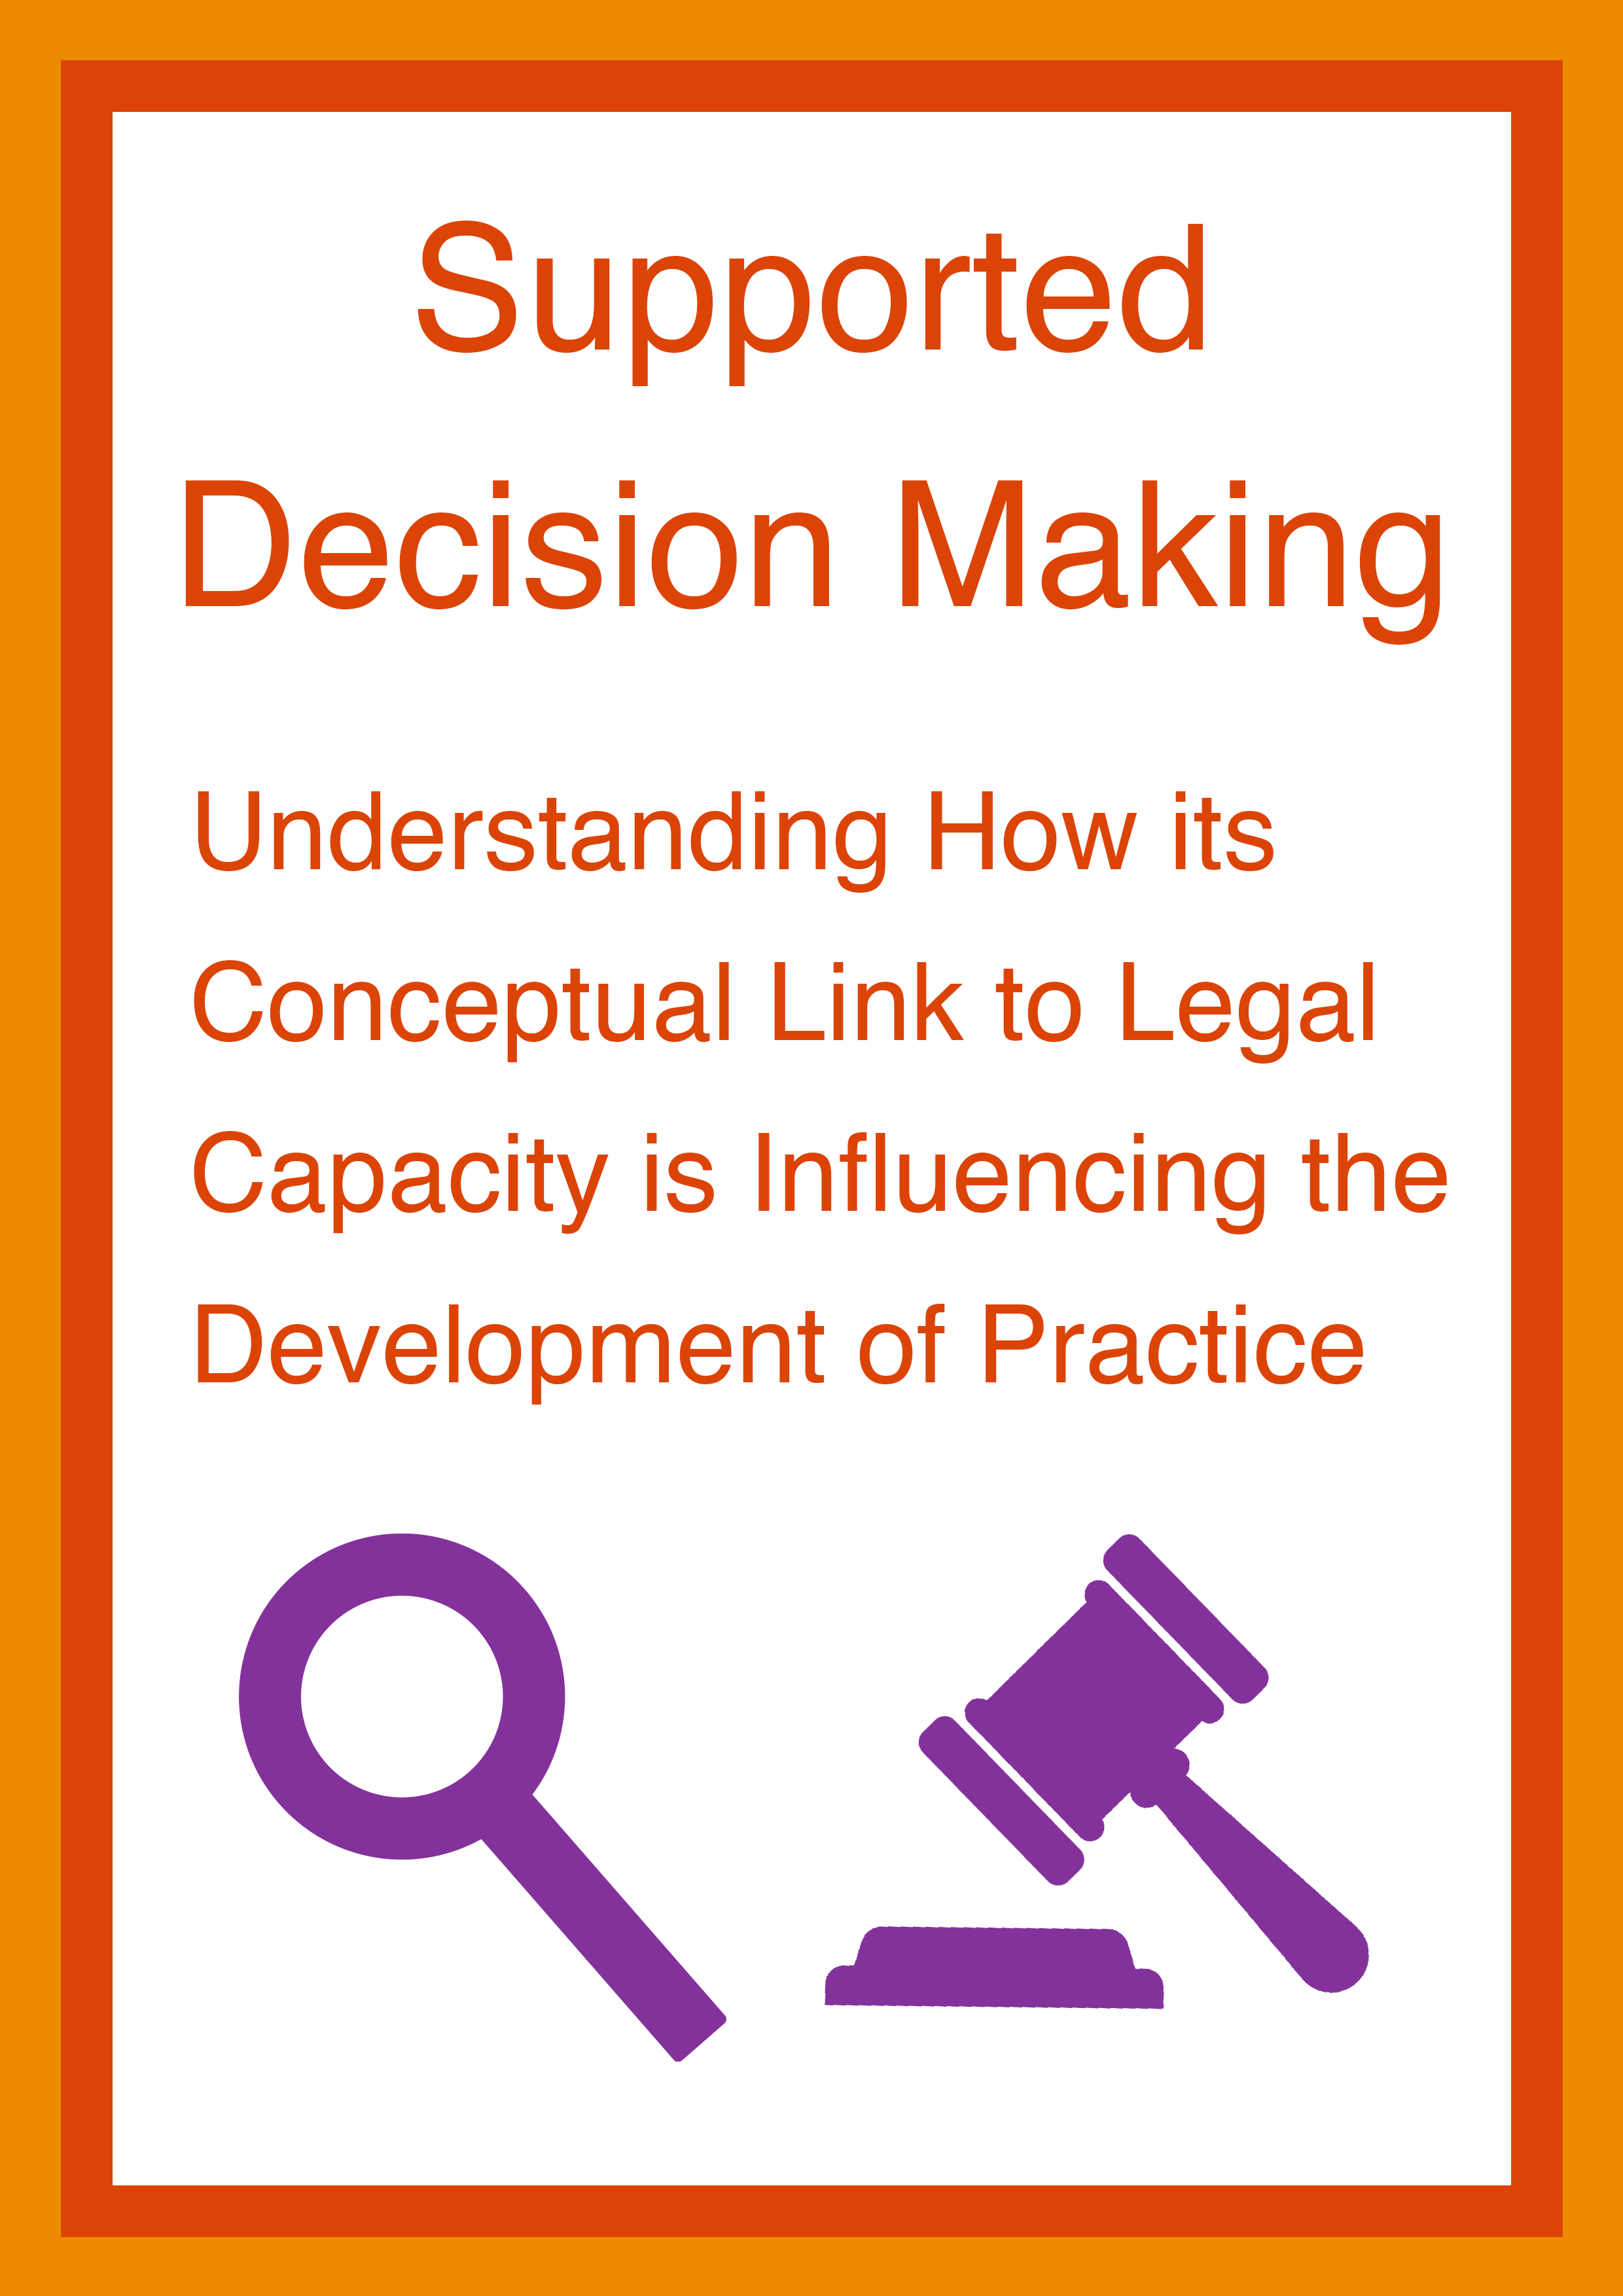 Cover art for: Supported Decision Making: Understanding How its Conceptual Link to Legal Capacity is Influencing the Development of Practice